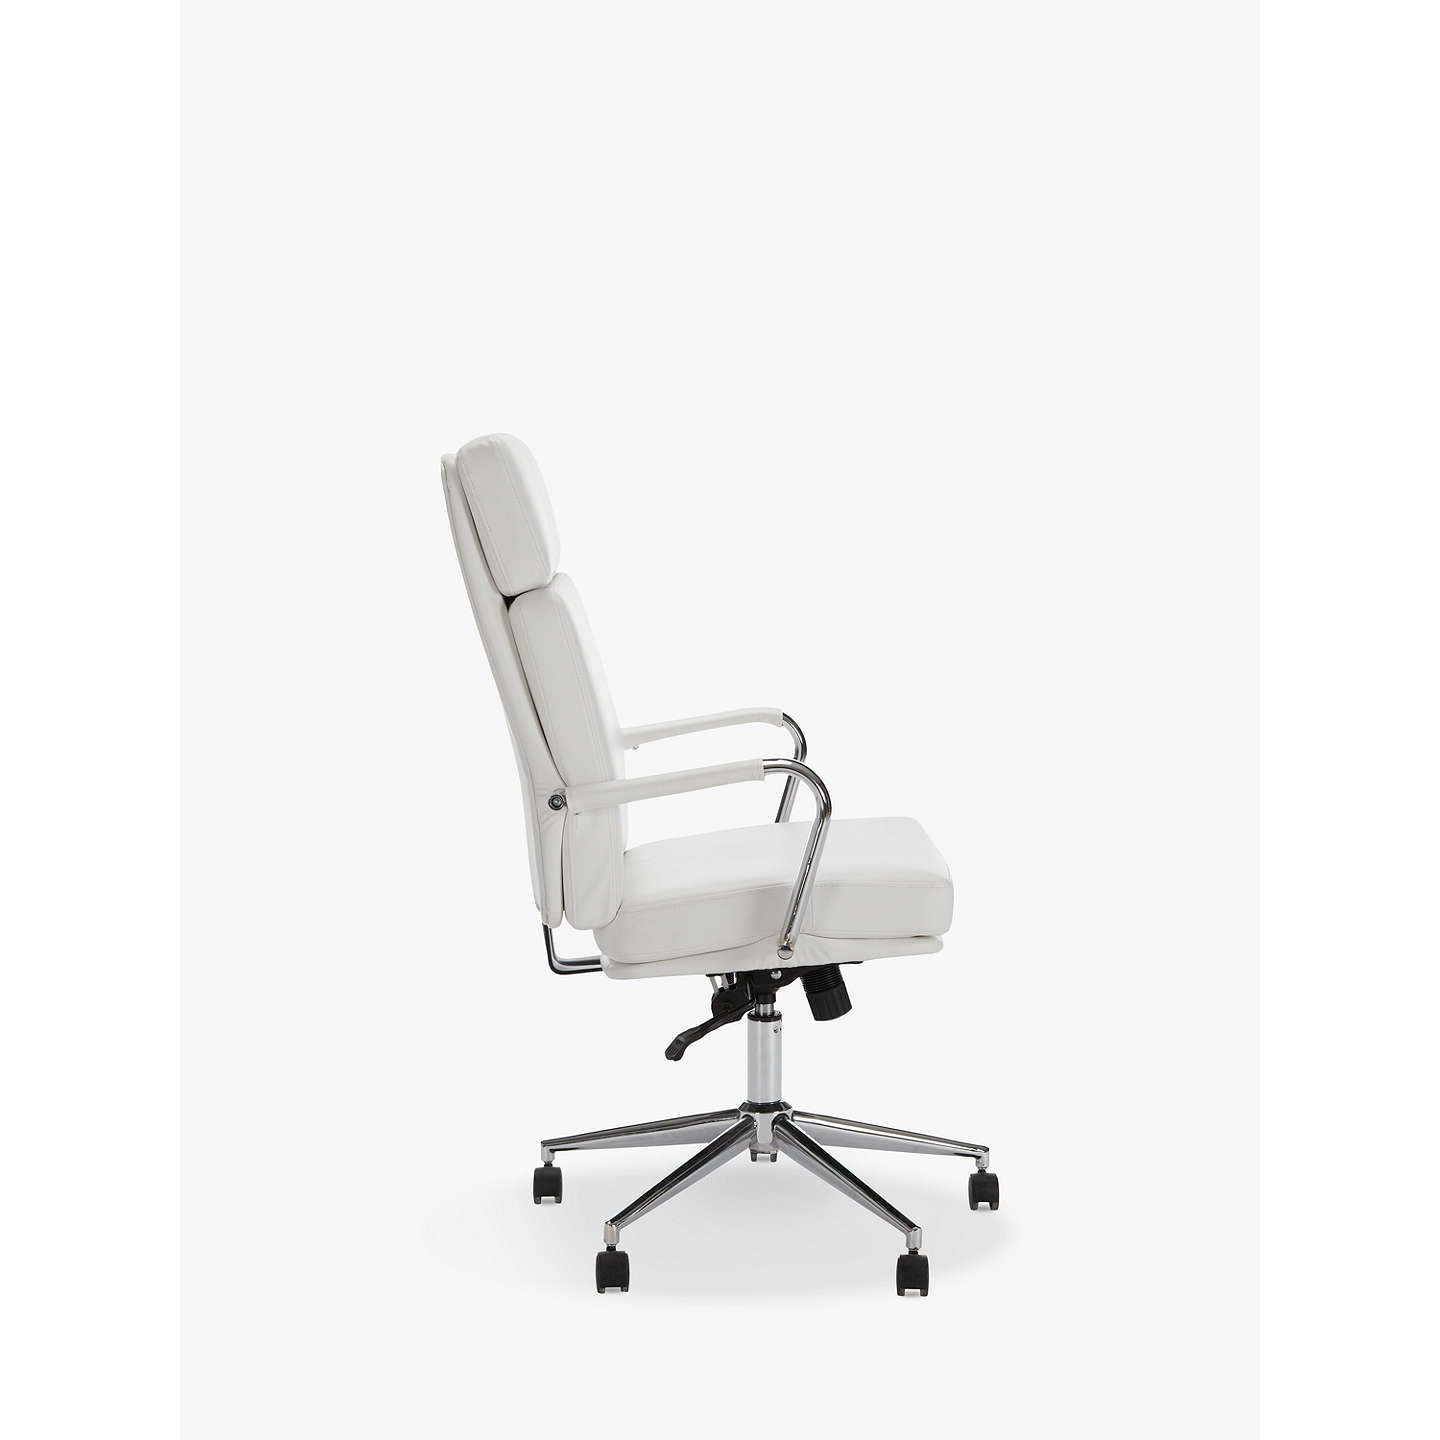 BuyJohn Lewis May Office Chair, White Online at johnlewis.com